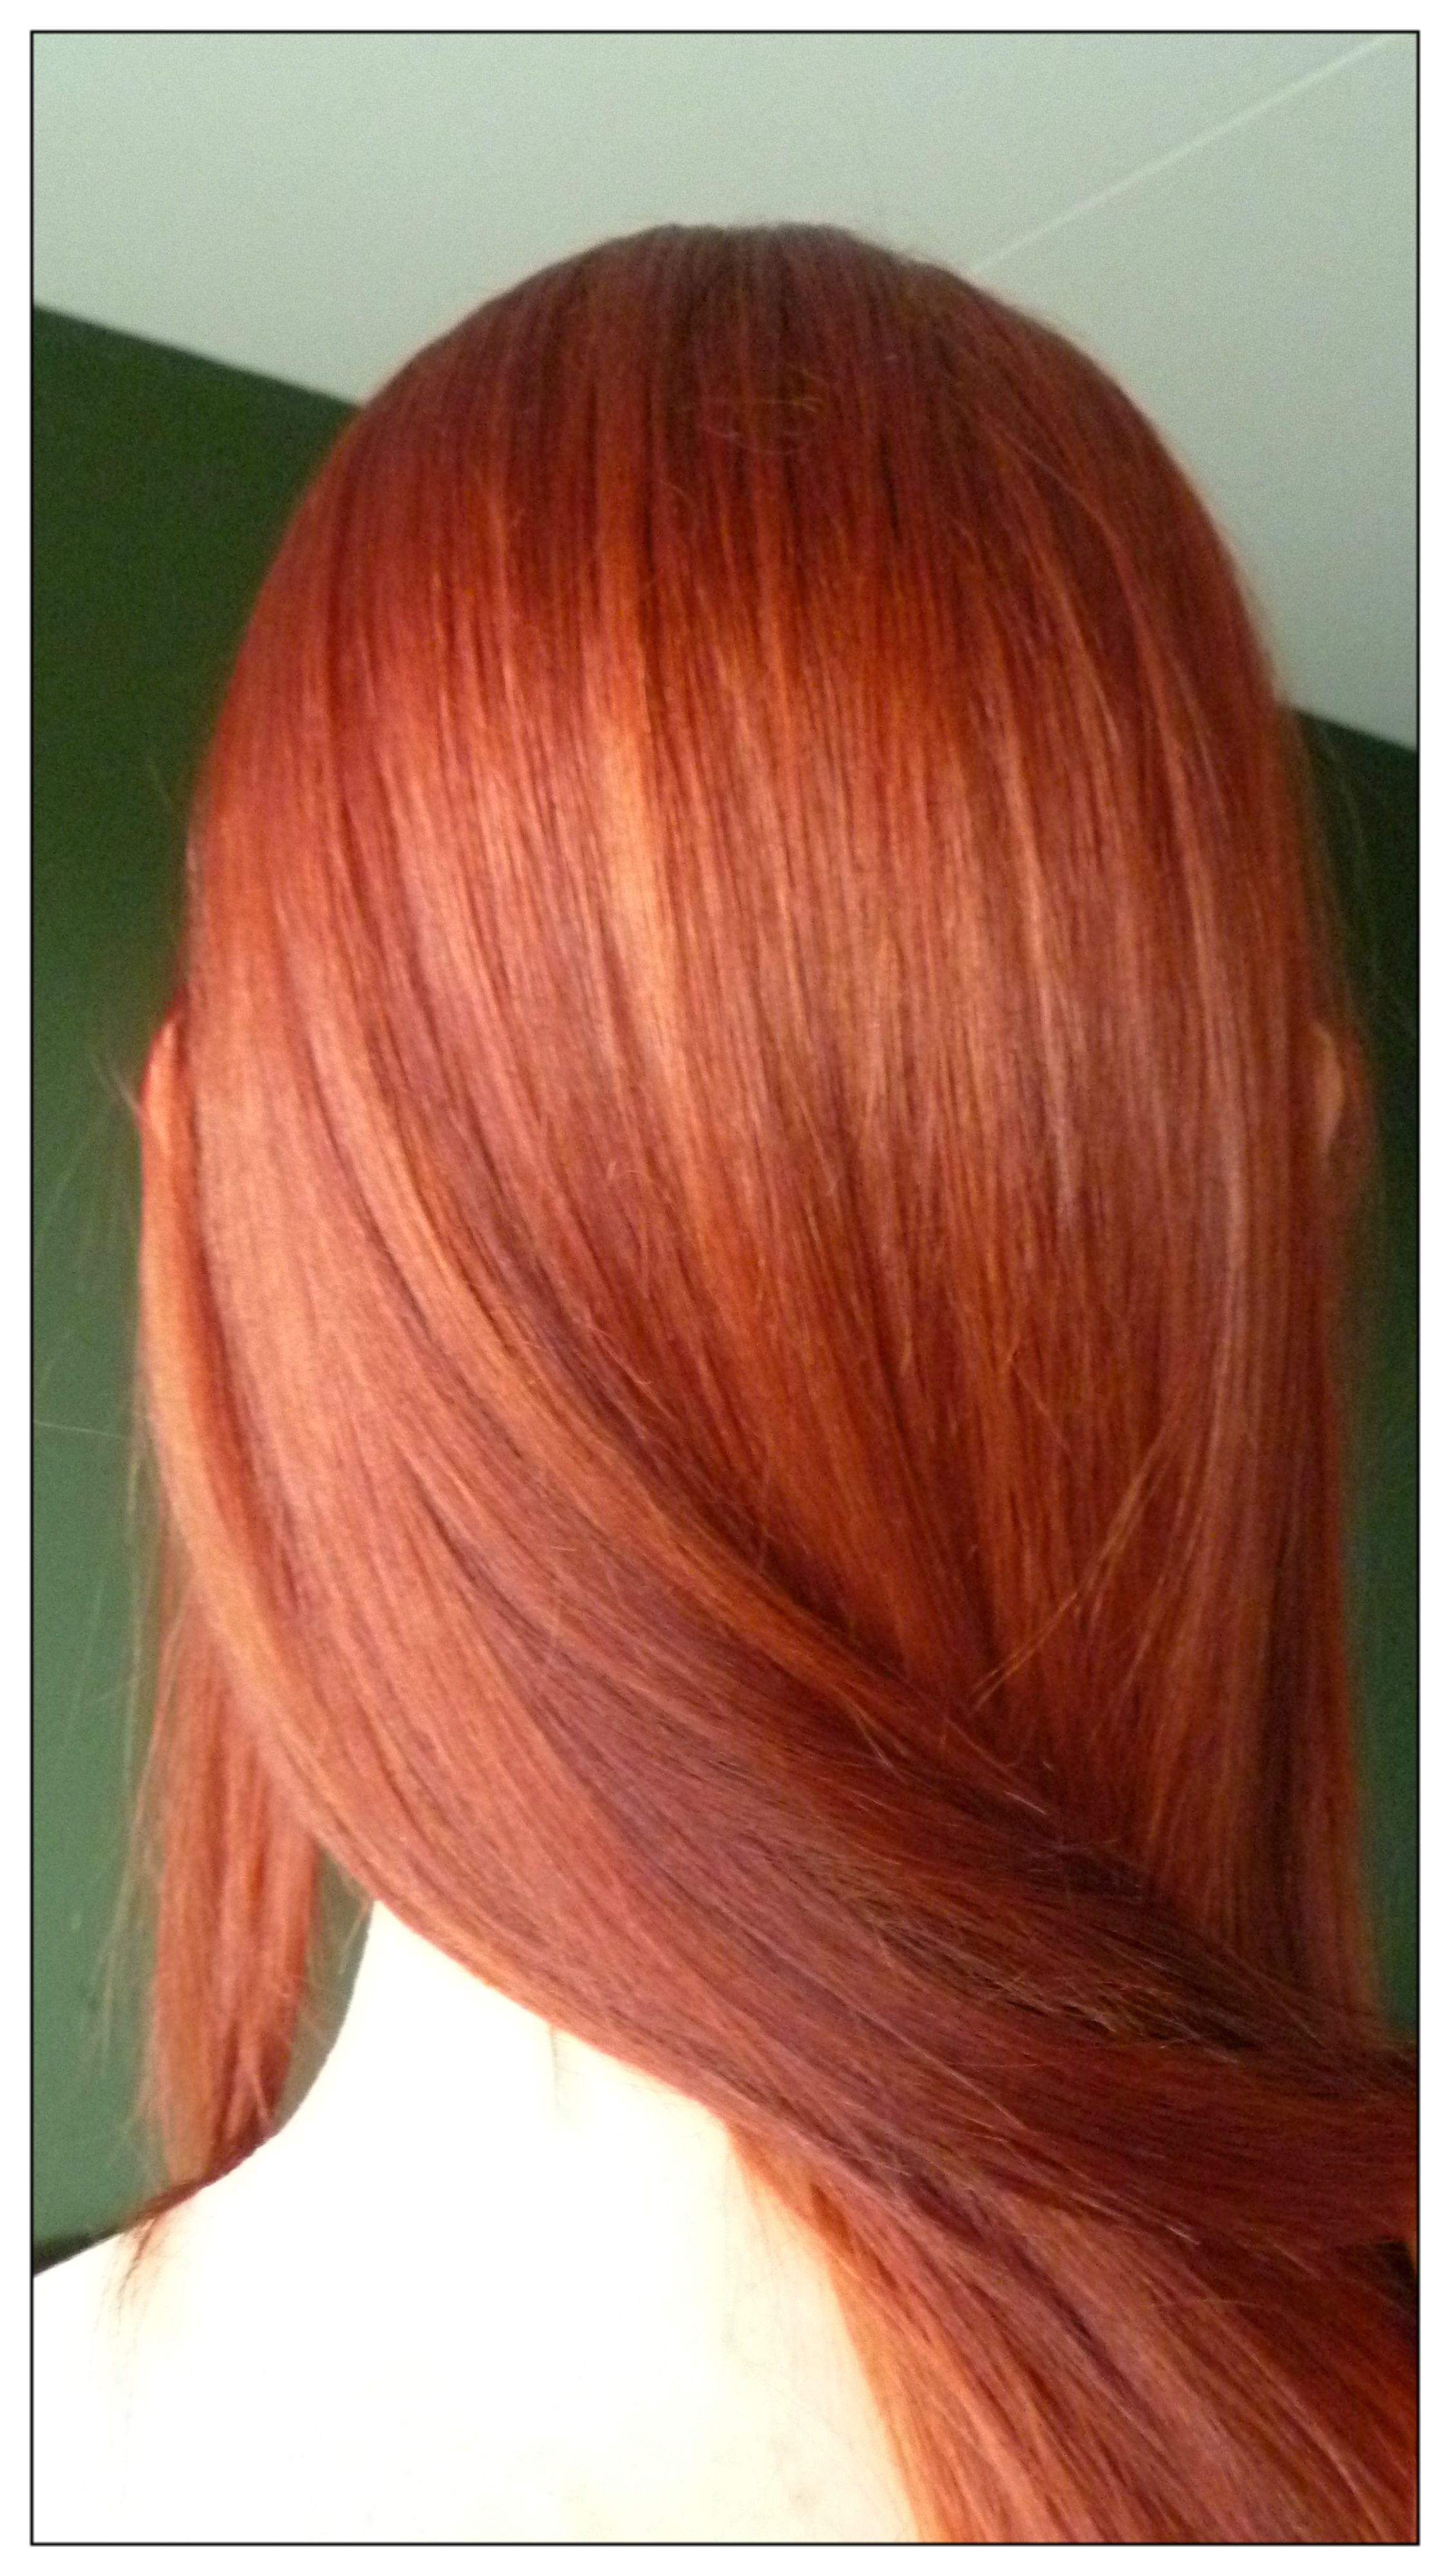 Copper Red Hair Love The Depth And Different Shades In It With